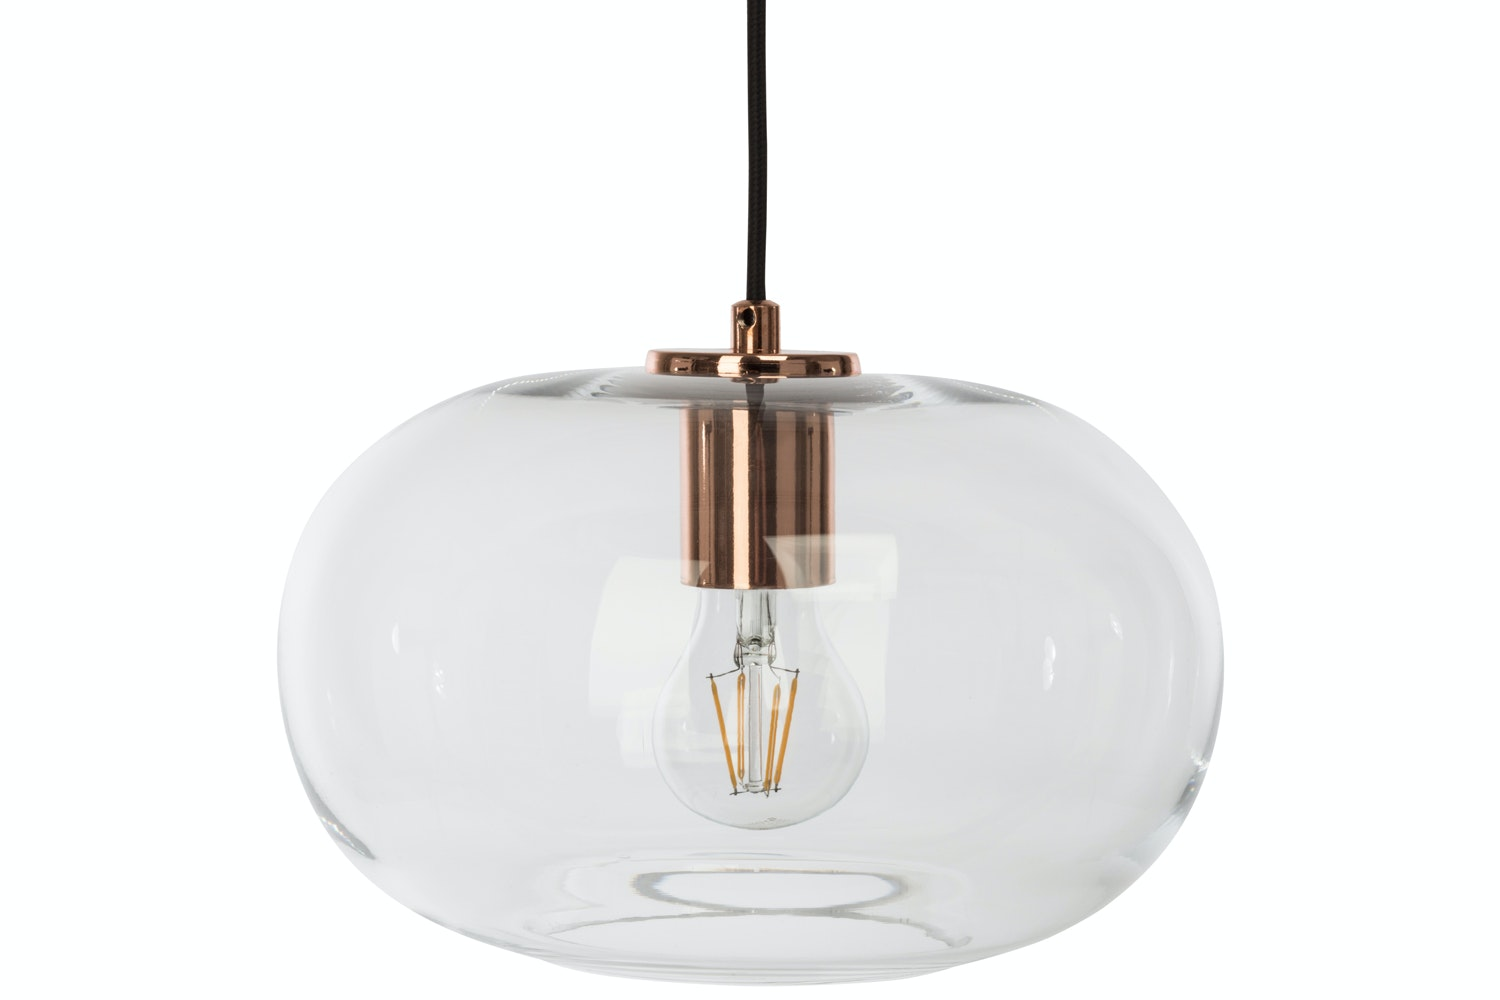 Sandness Copper/Clear Ceiling Glass Light